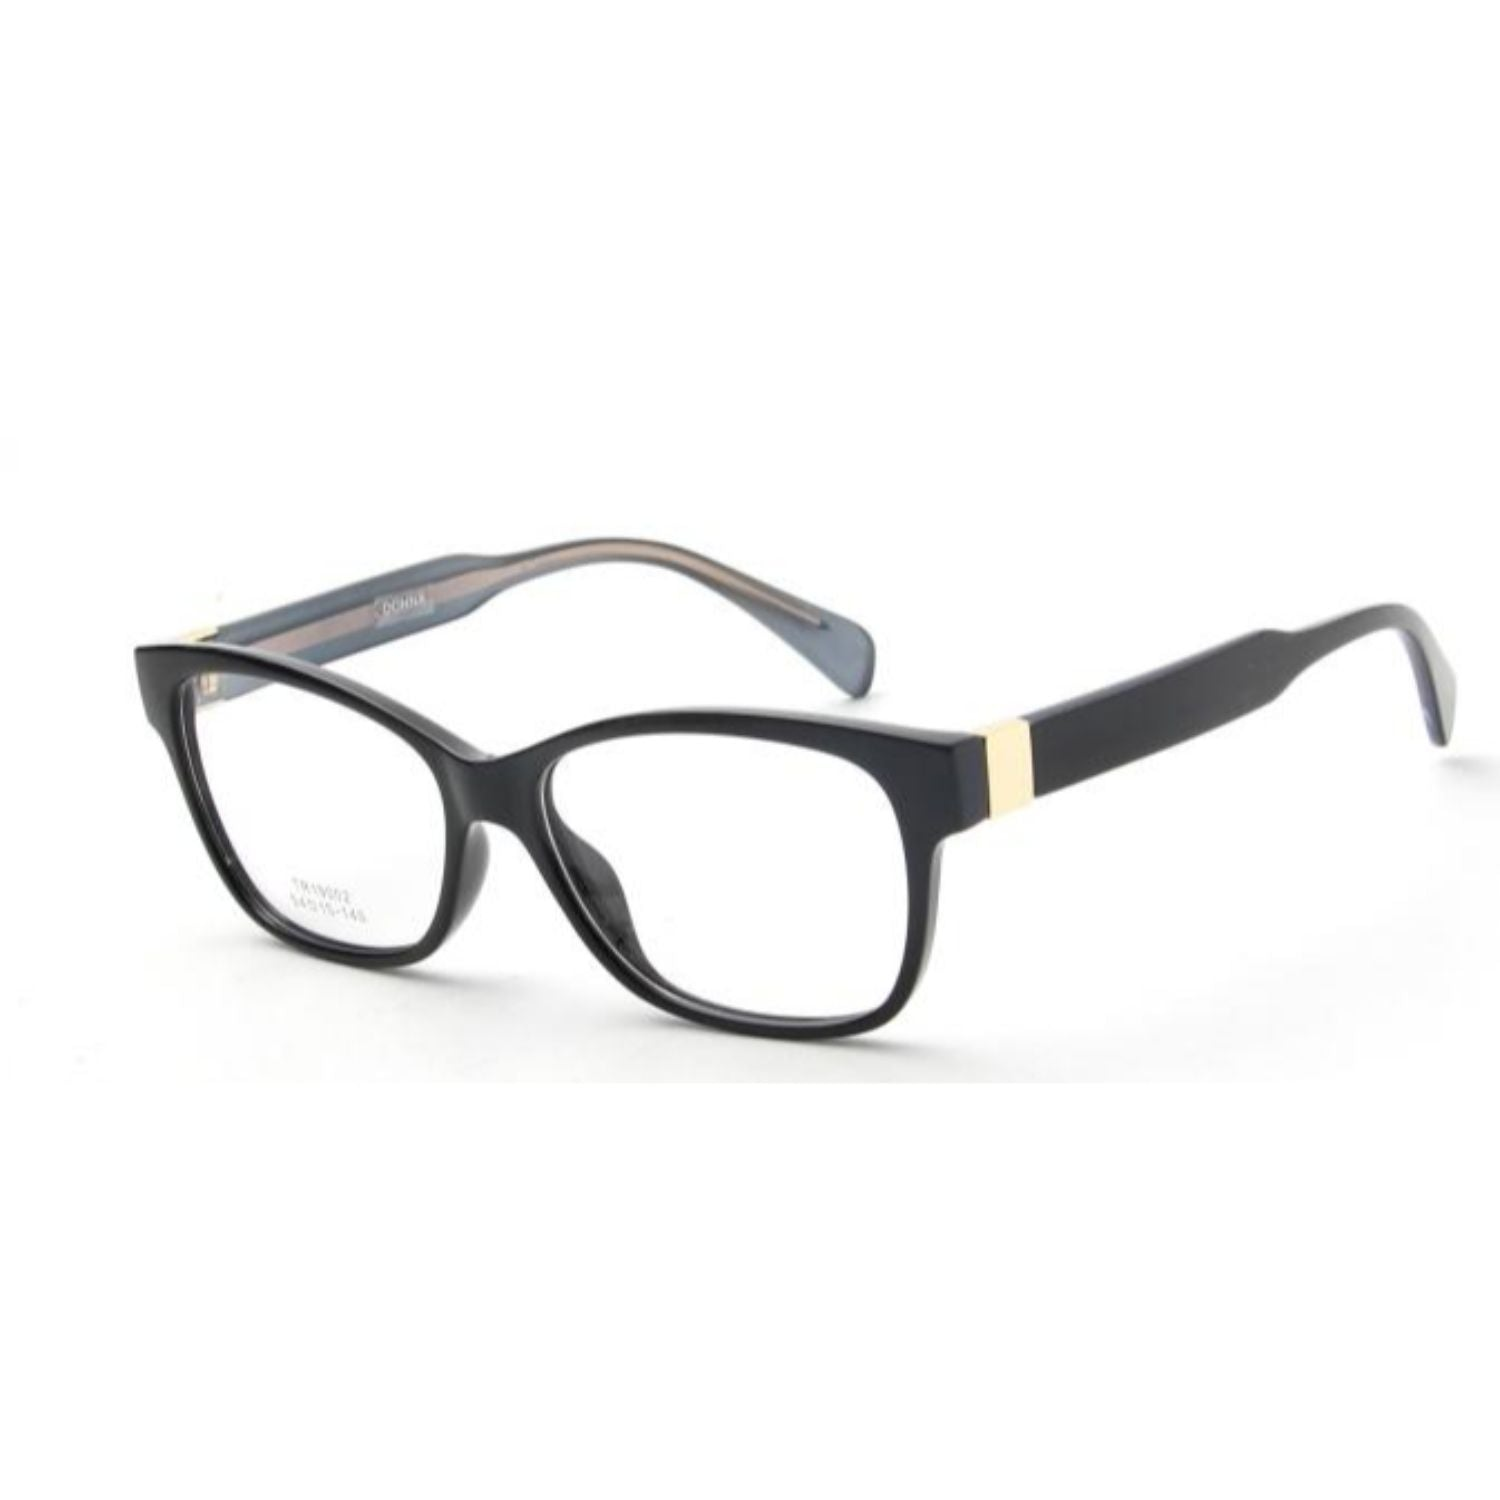 OTR14 - Classic Full Rim Rectangle Optical Glasses - Iris Fashion Inc. | Wholesale Sunglasses and Glasses